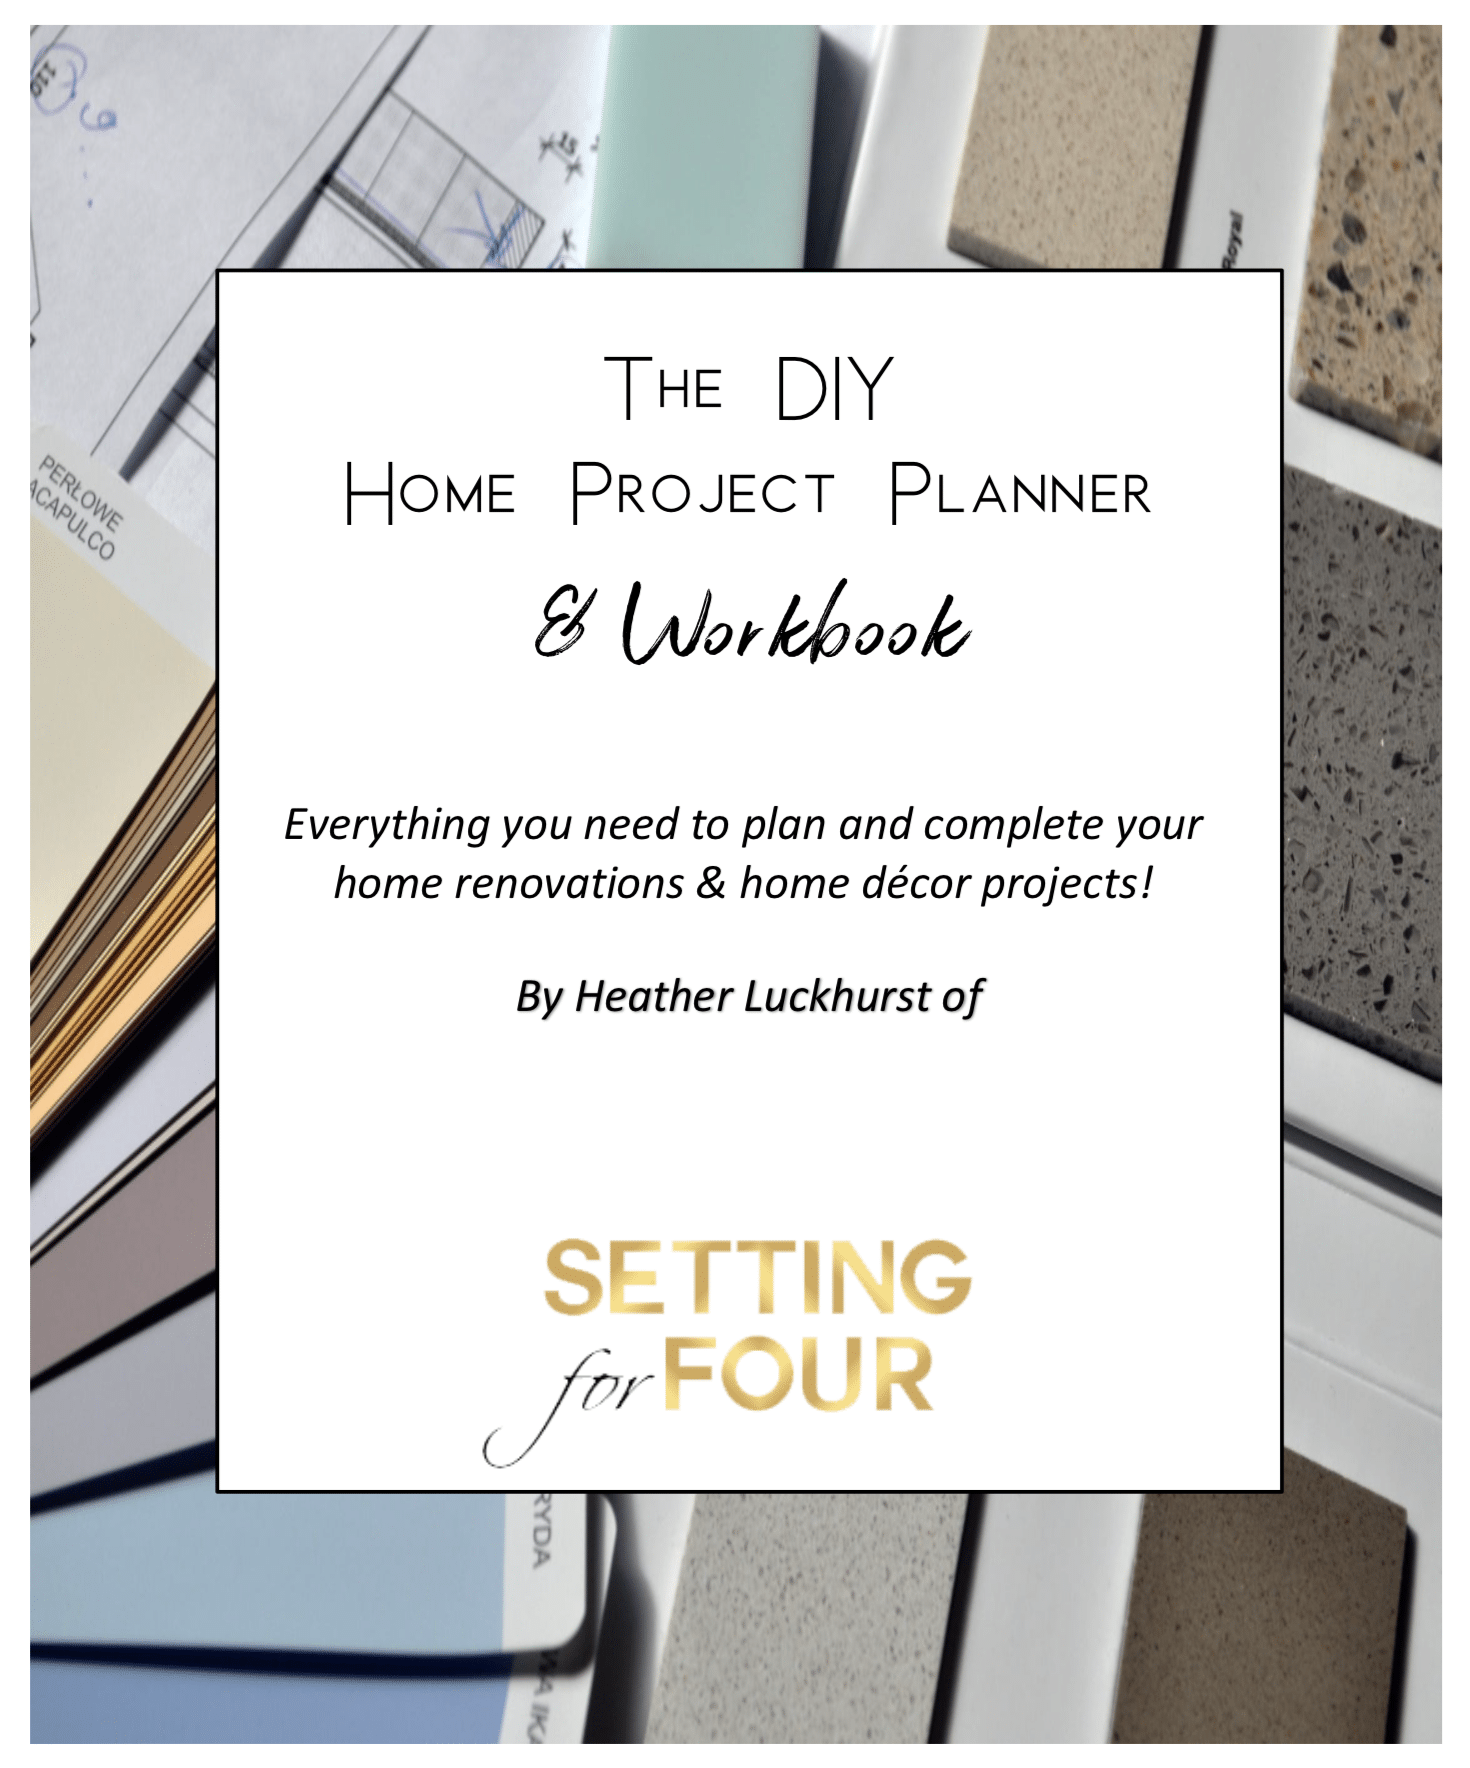 picture regarding Diy Planner Organizer called The Do-it-yourself Residence Job Planner Workbook Organizer - 19 Web pages!